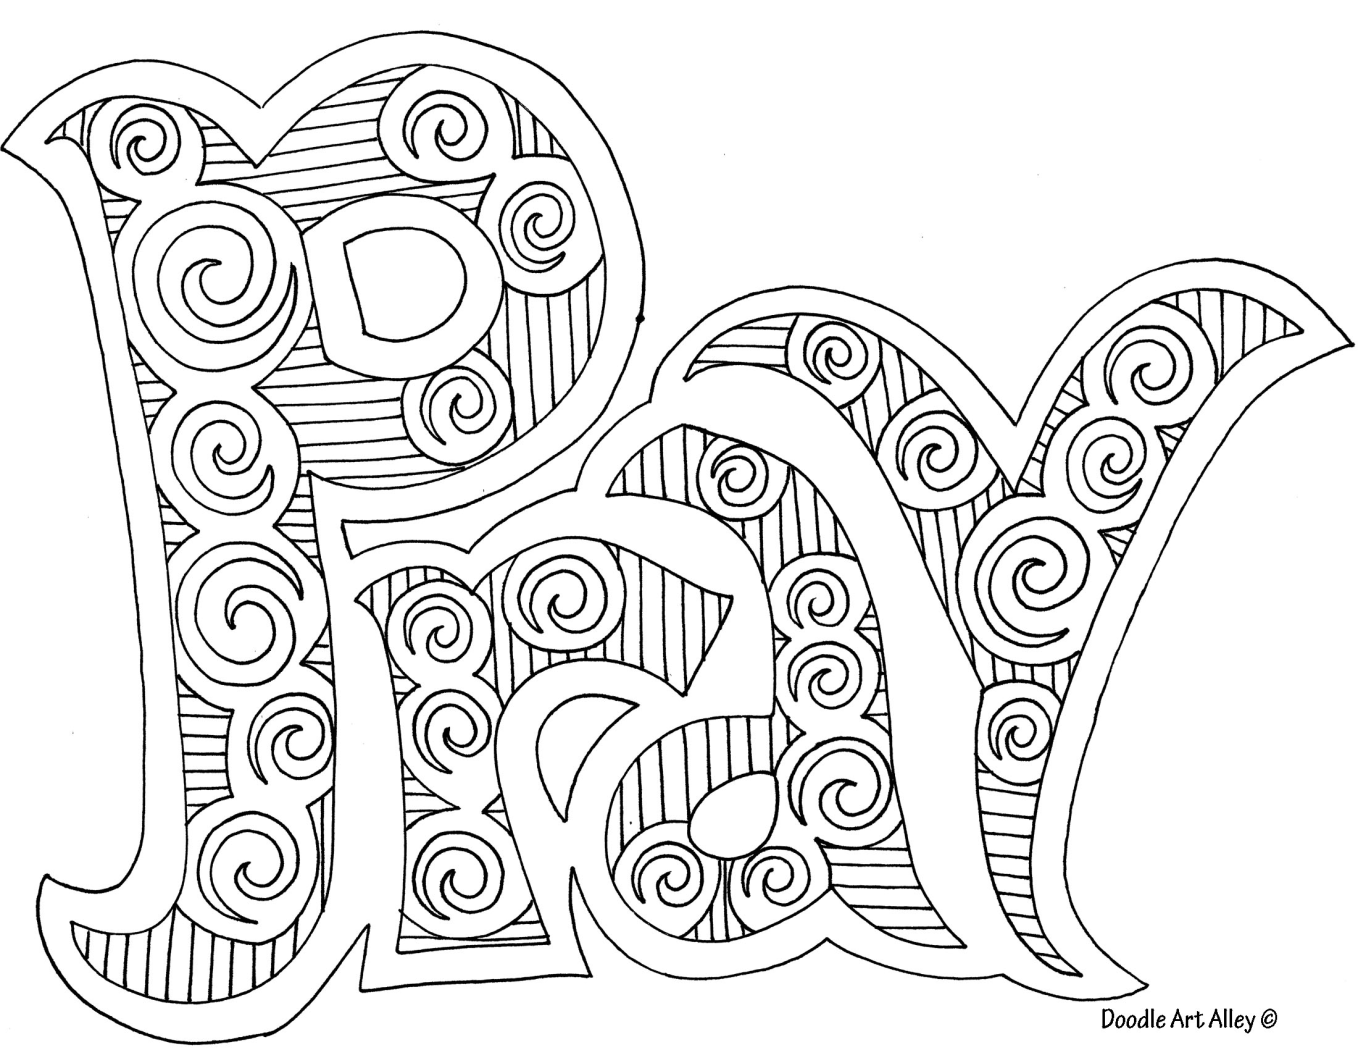 adult coloring page_ i want to do this for my prayer journal cover